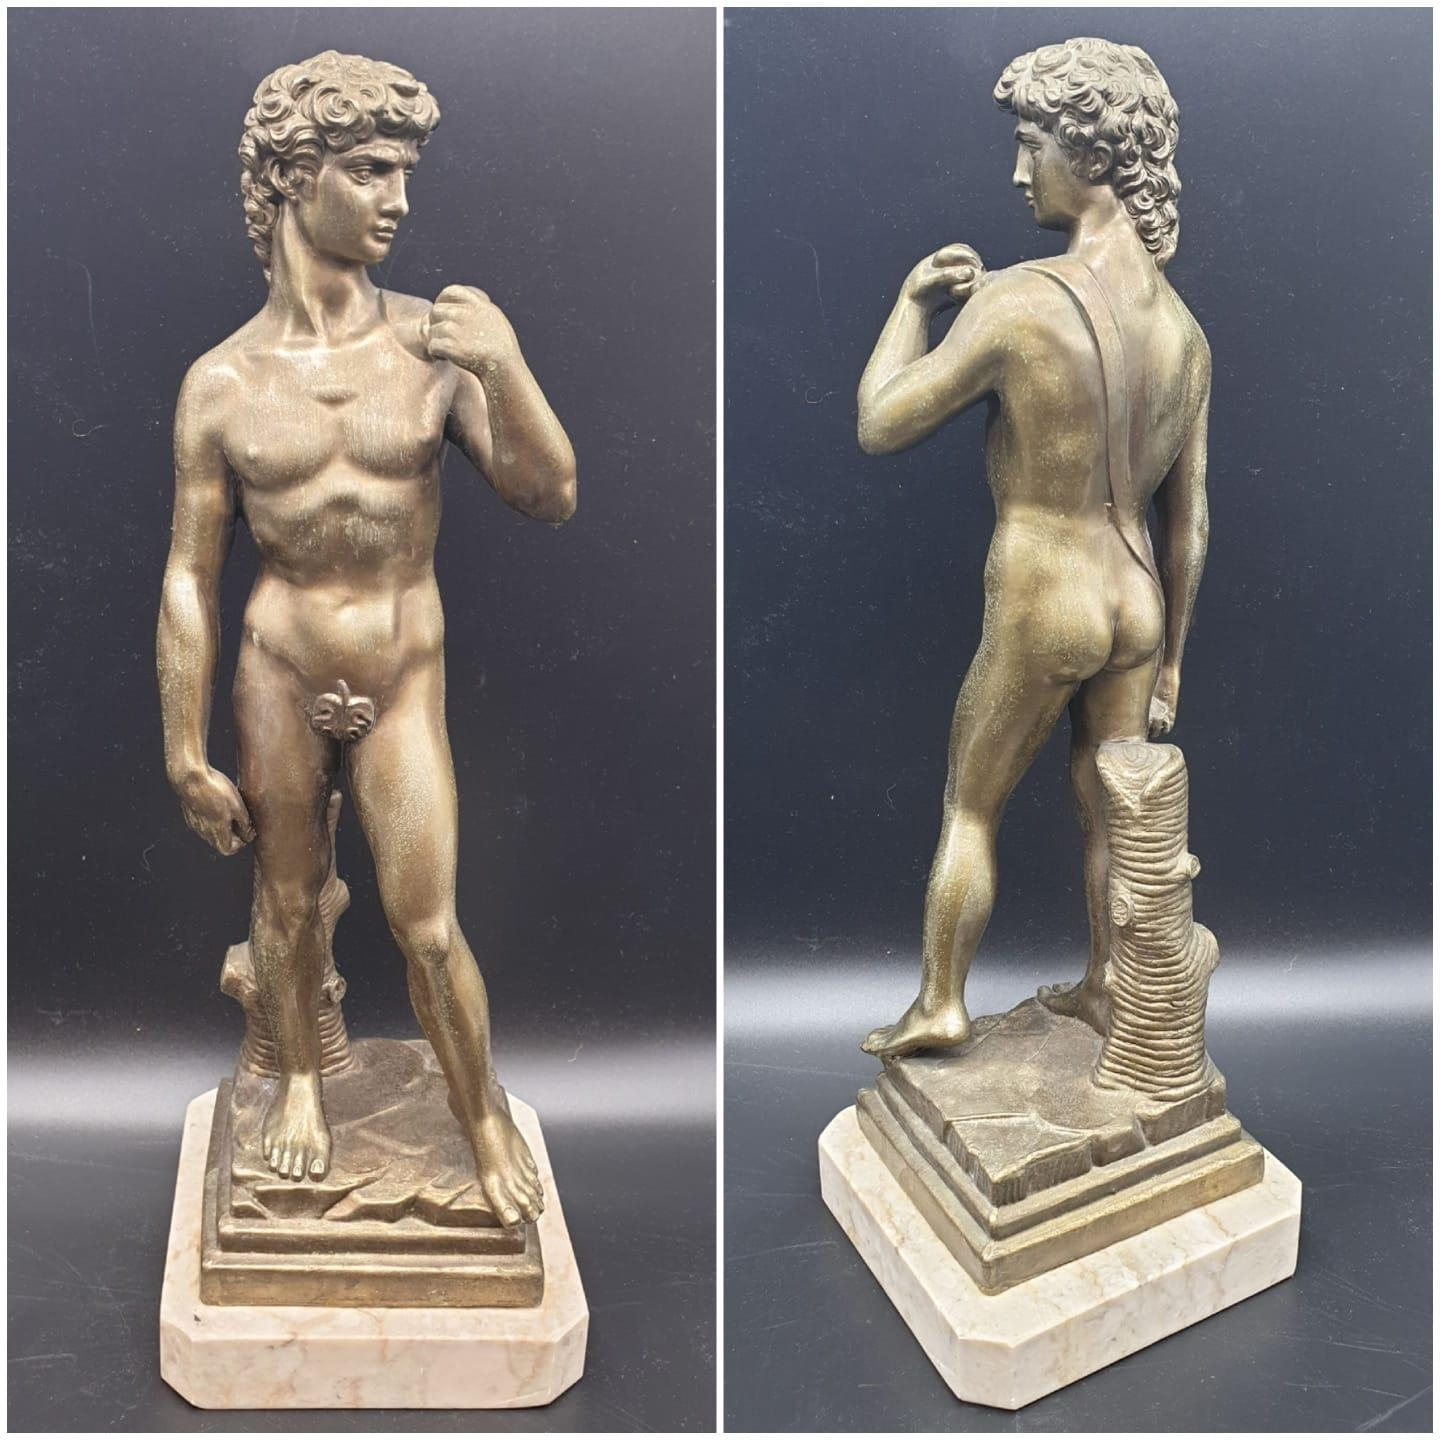 A Statue of Michelangelo's David in Brass on a Marble Base 40cms Tall 3.6kg